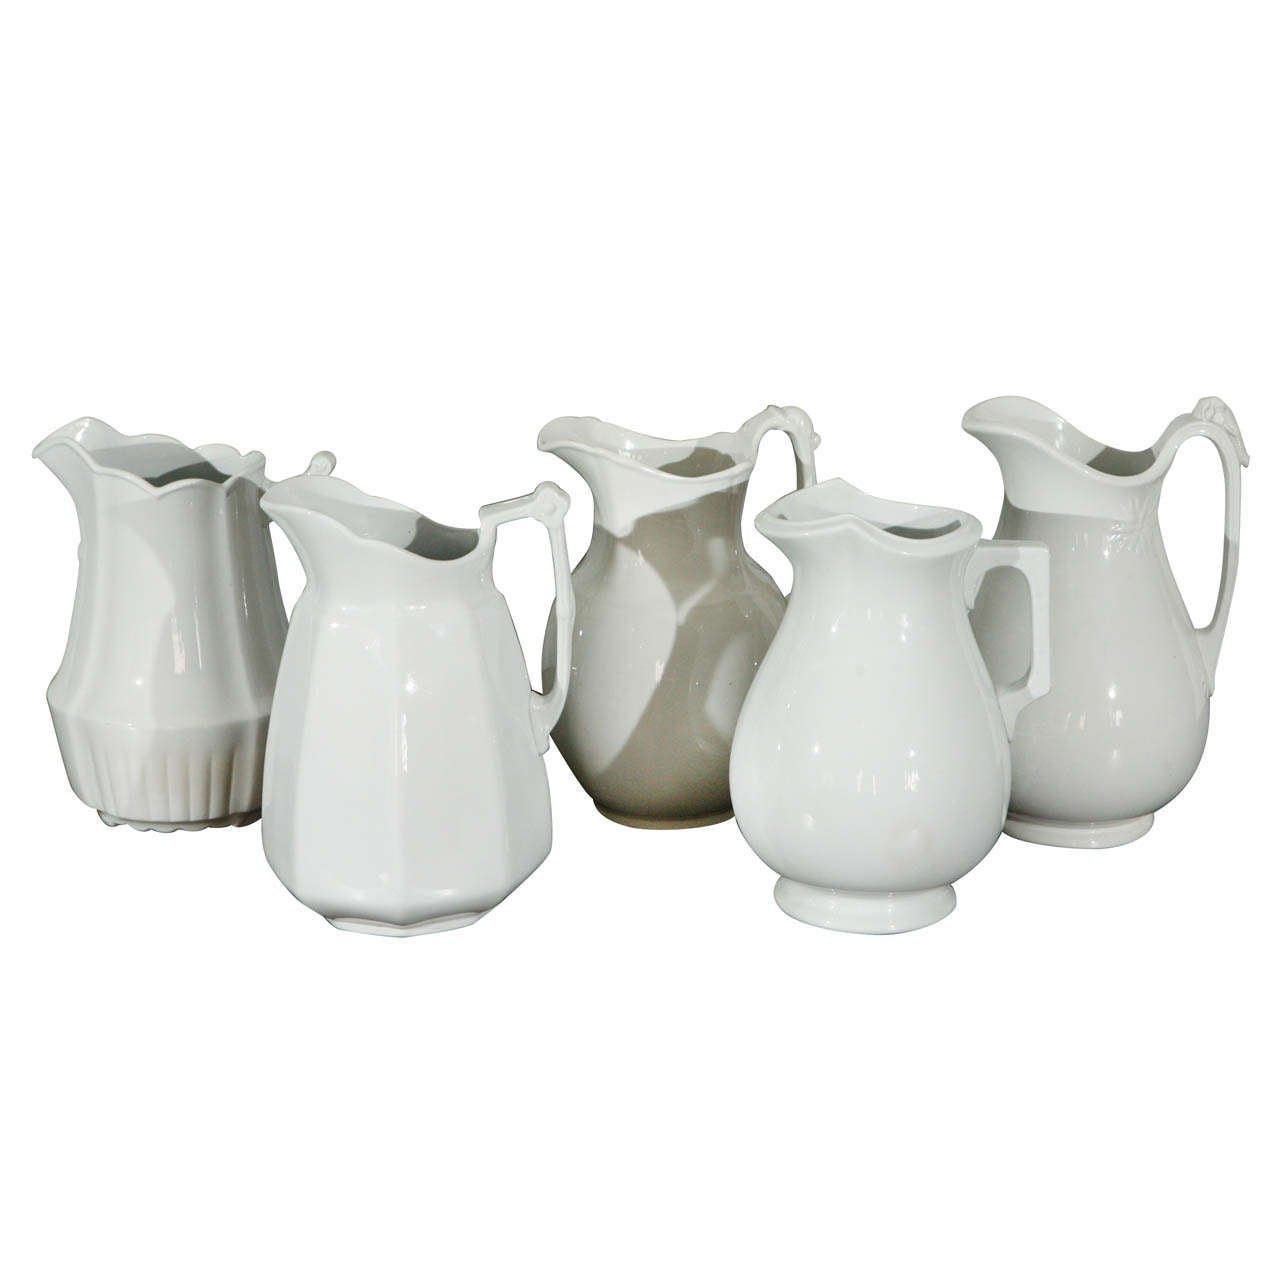 19th Century English White Ironstone Pitchers